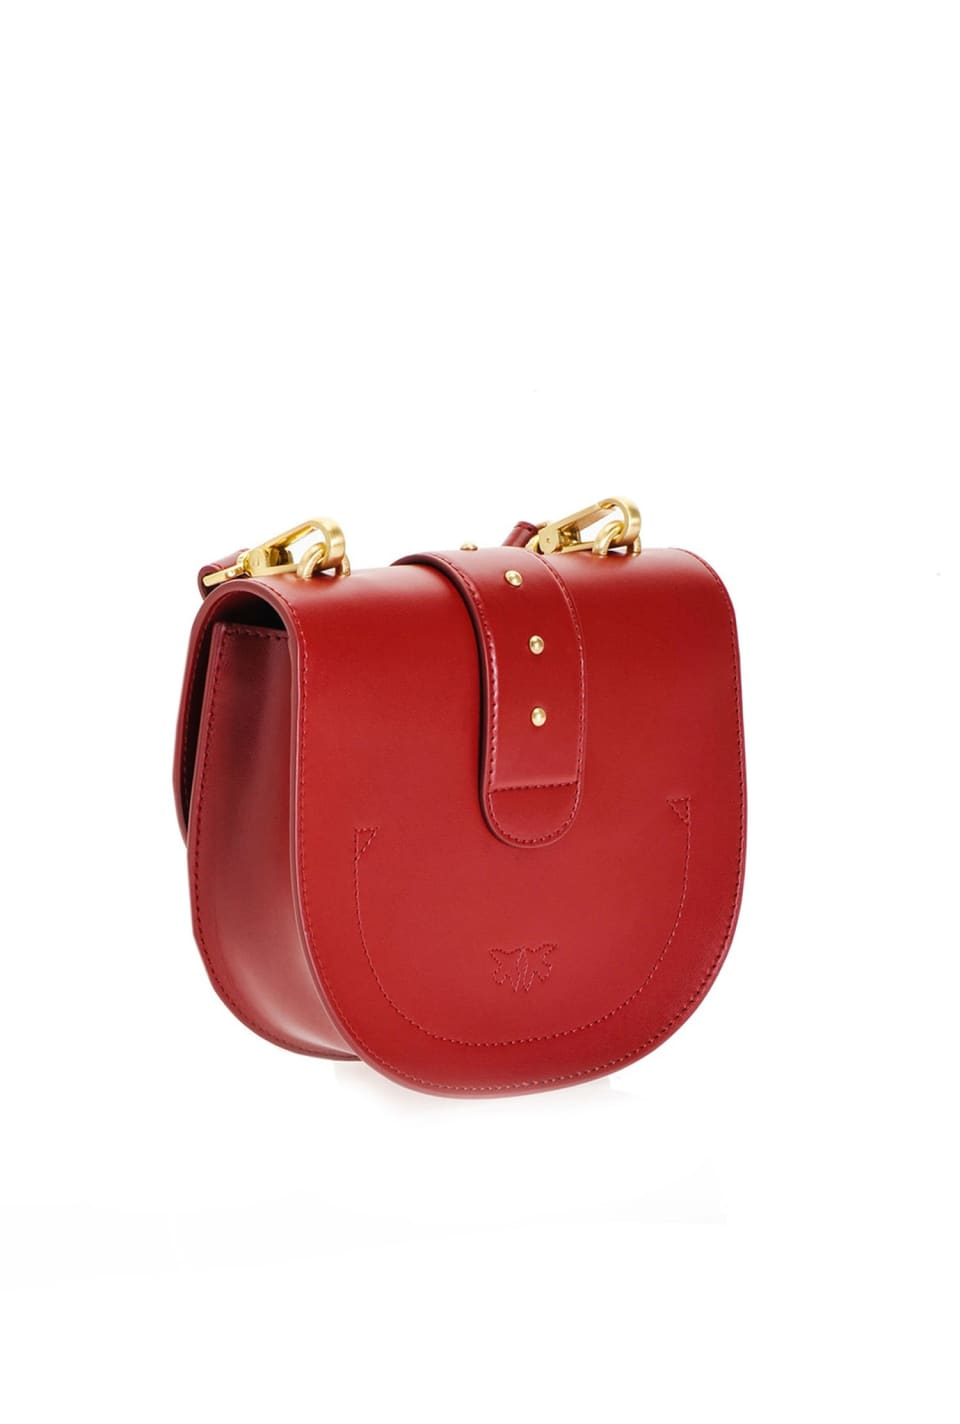 Simply Round Love Bag in leather - Pinko